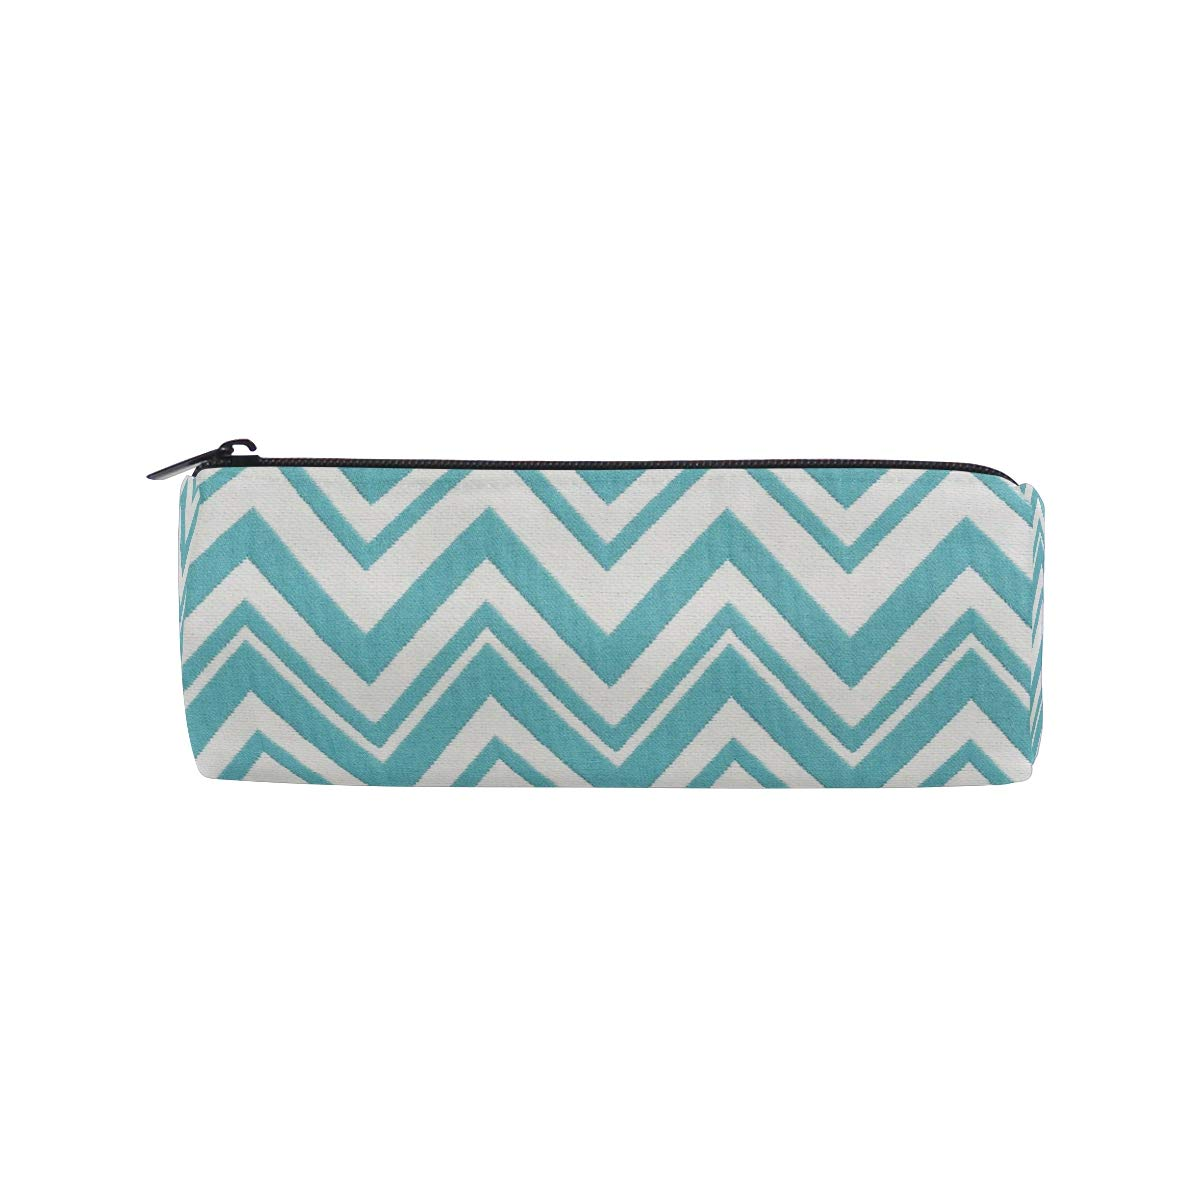 Pencil Case Teal and White Zig Zag School Pen Pouch Office Zippered Pencil Cases Holder Women Makeup Bag